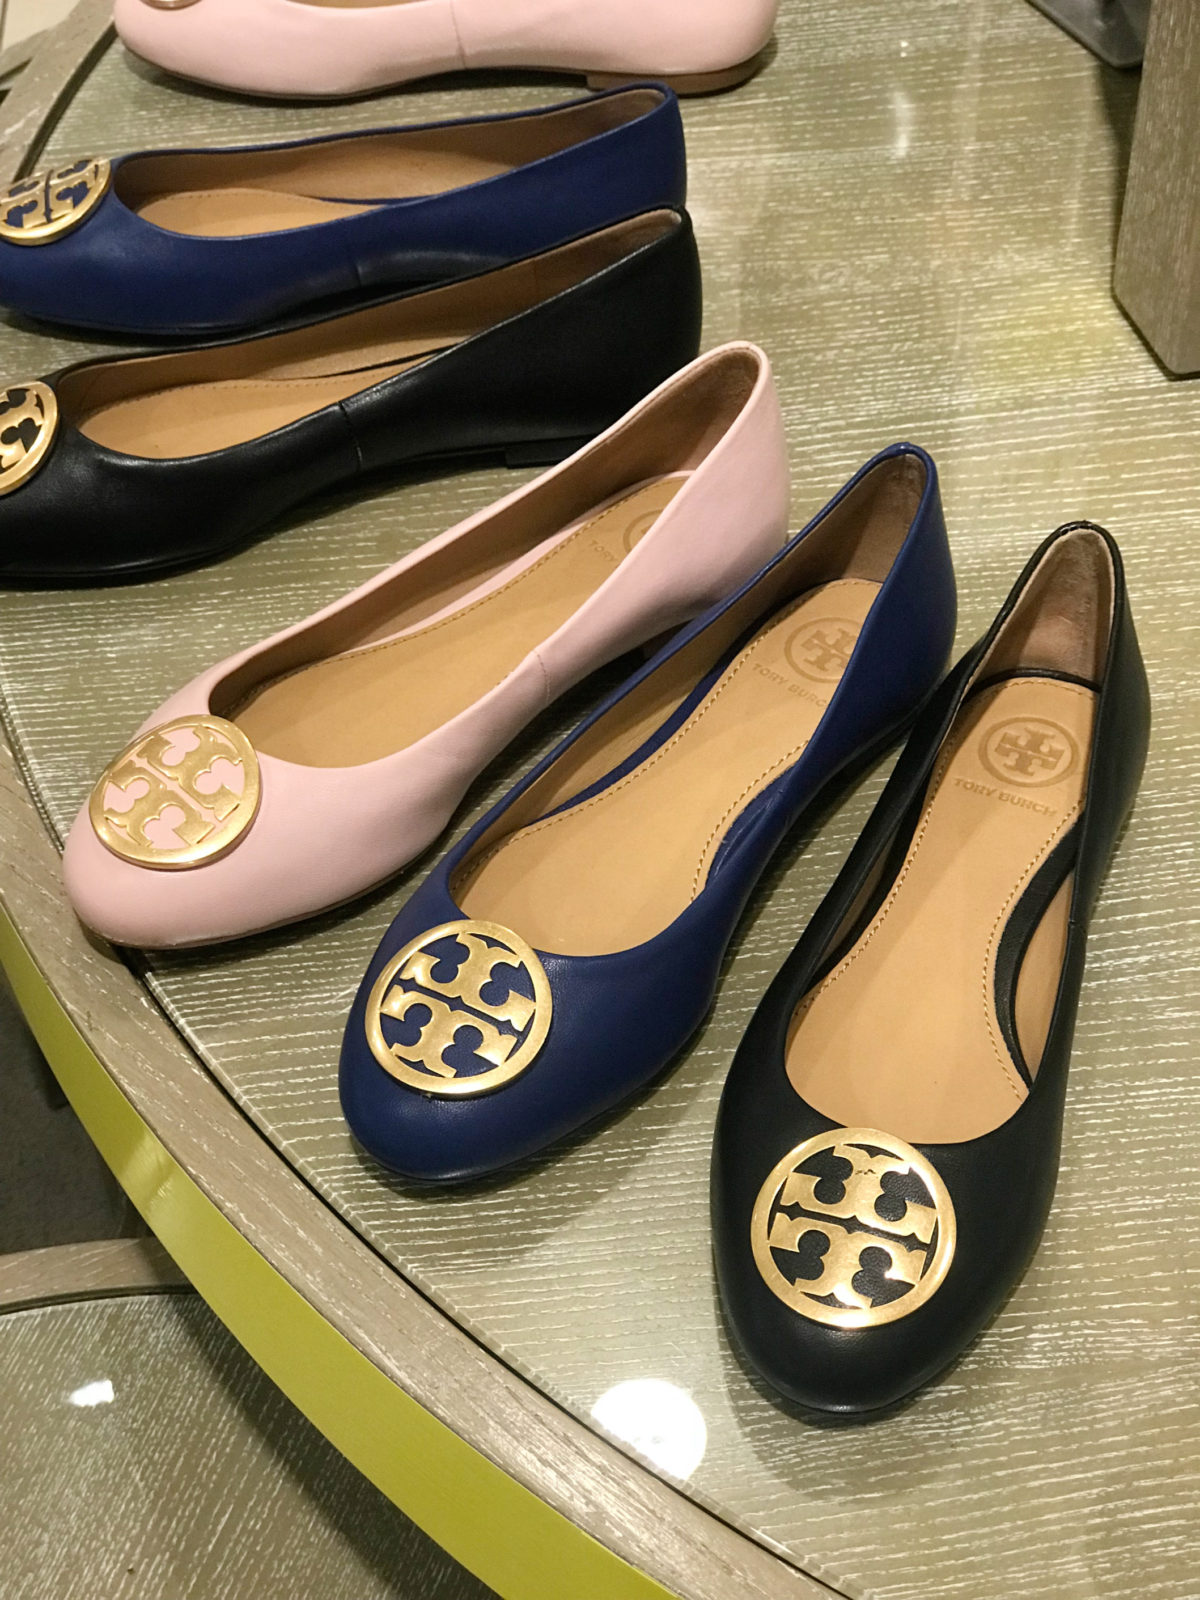 nordstrom anniversary sale Tory Burch Flats